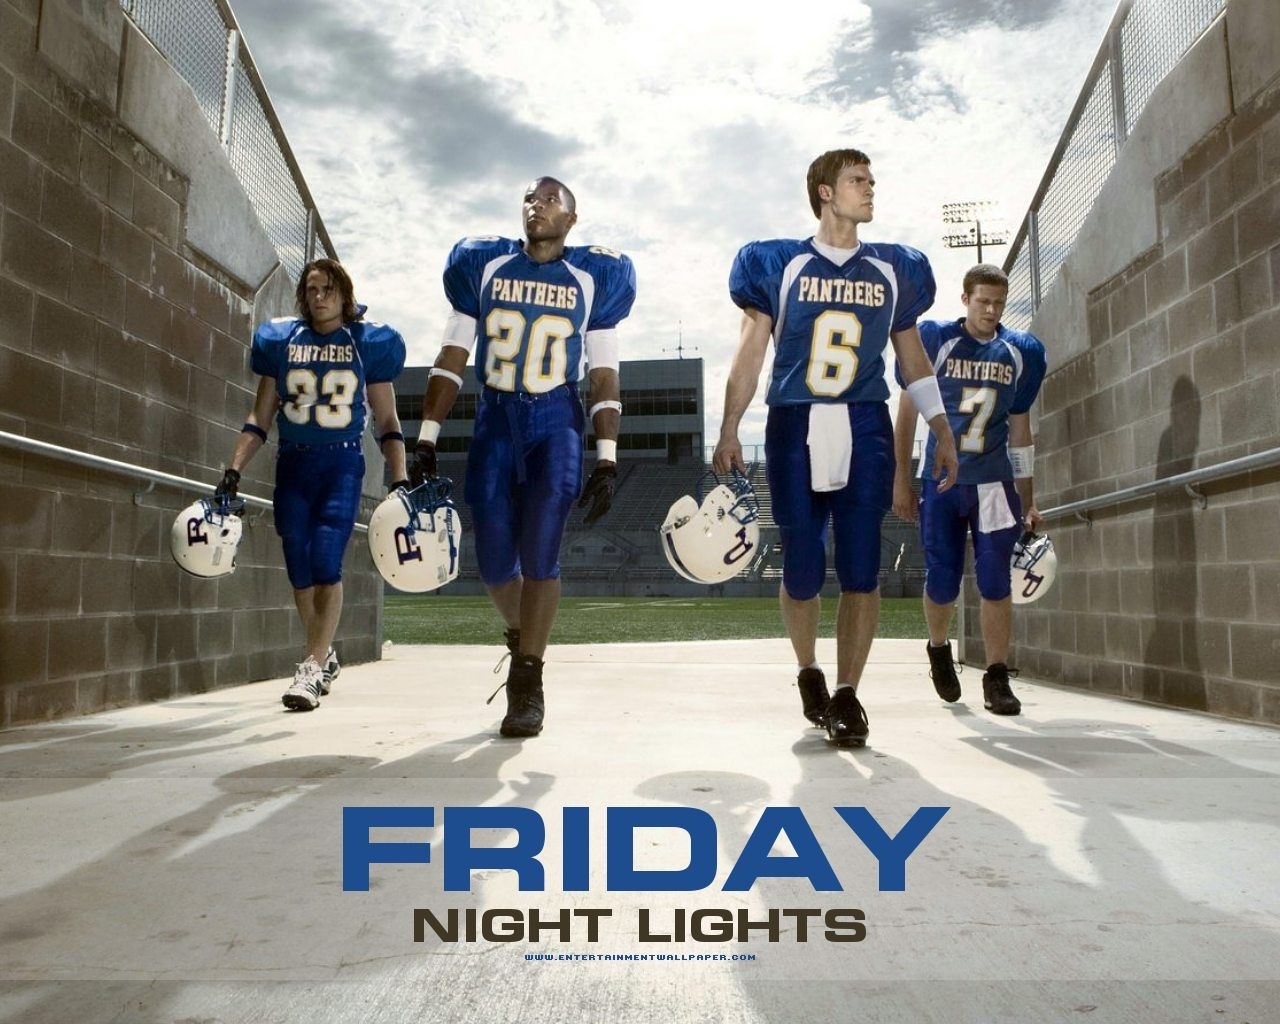 friday night lights (tv) wallpaper - #20012348 (1280x1024) | desktop